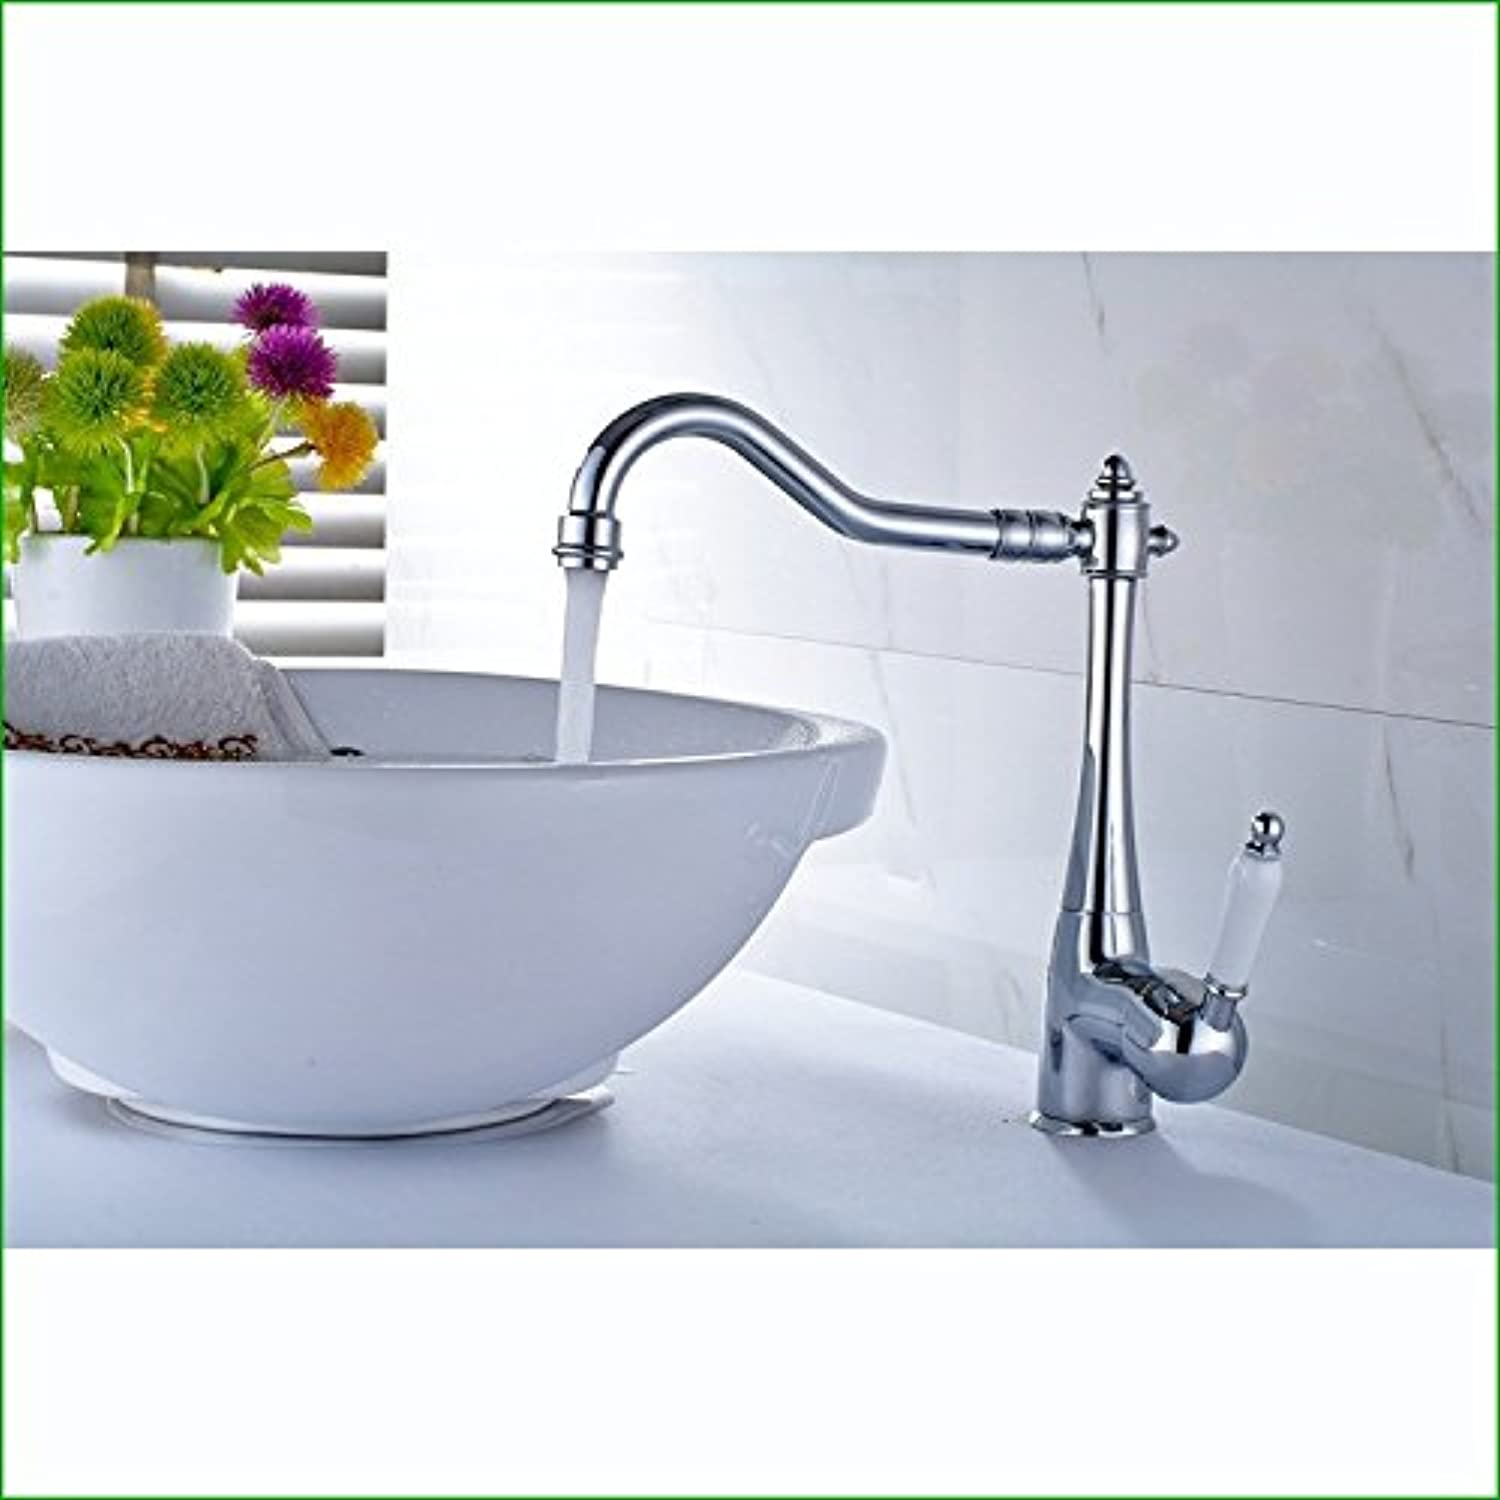 Commercial Single Lever Pull Down Kitchen Sink Faucet Brass Constructed Polished European All-Copper Chrome Kitchen Sink Bathroom Basin Hot and Cold Single Hole redating Faucet